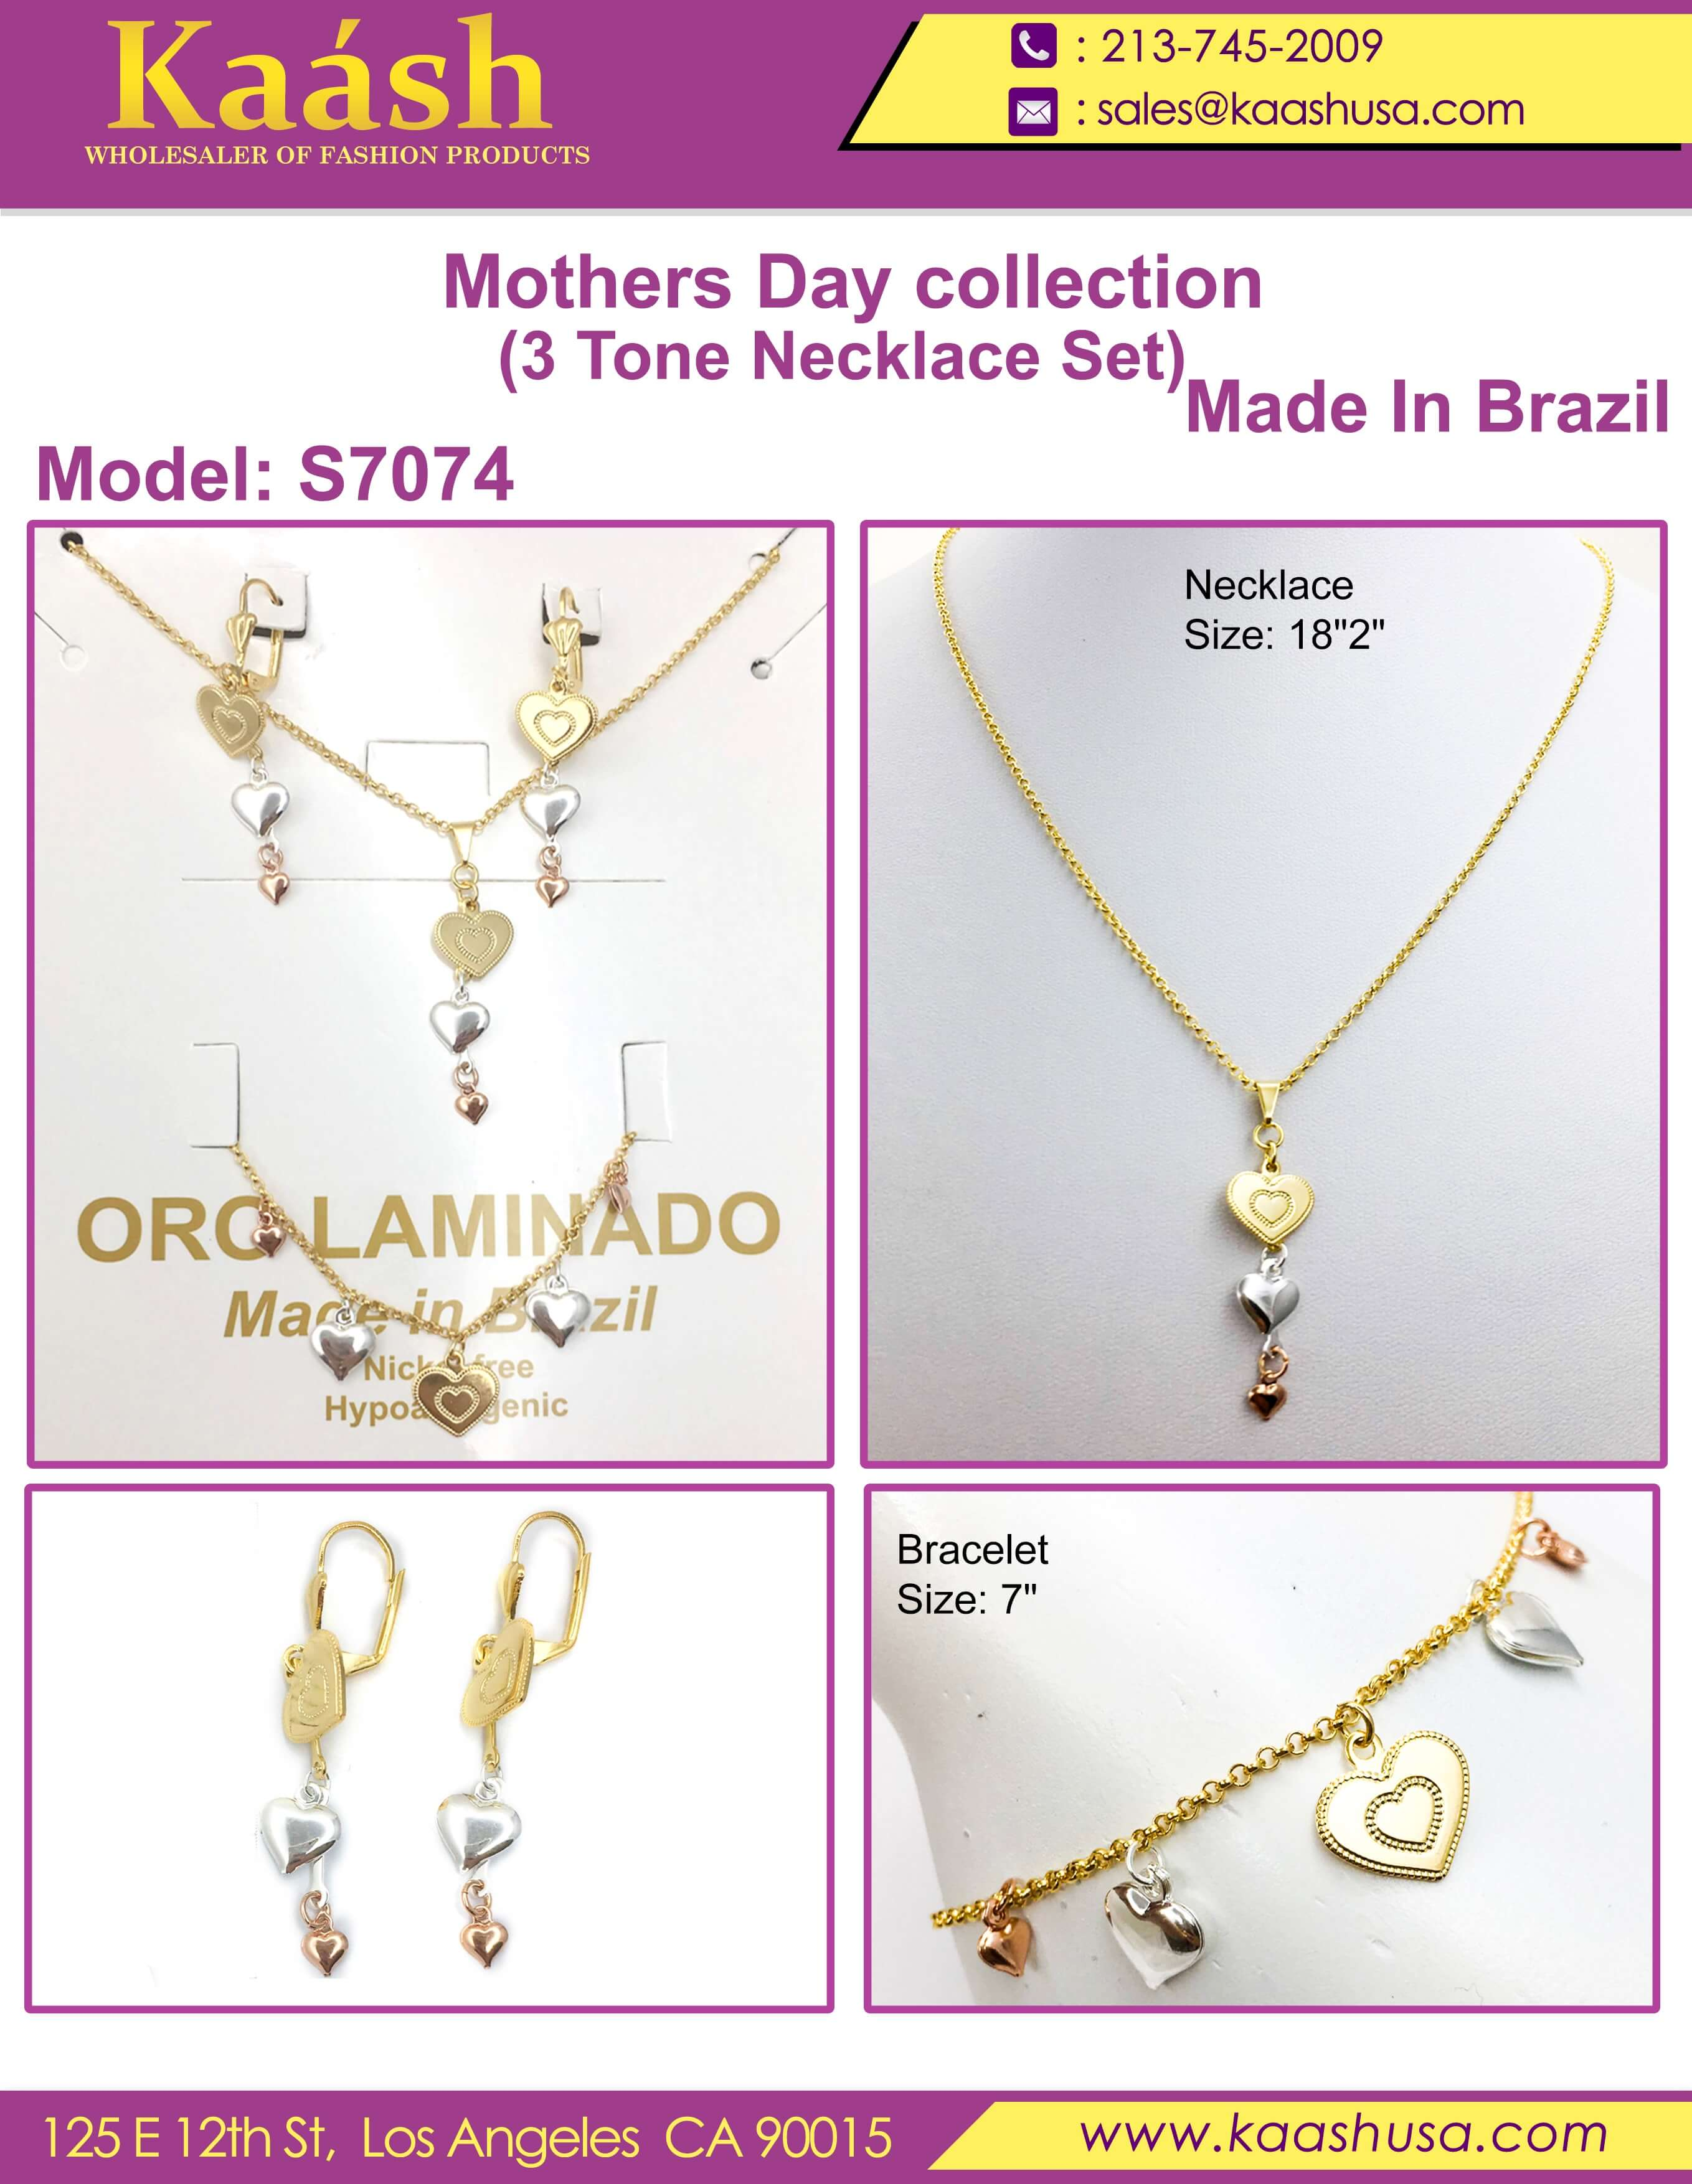 Beautiful Necklace Sets on Wholesale Price for Mother's Day